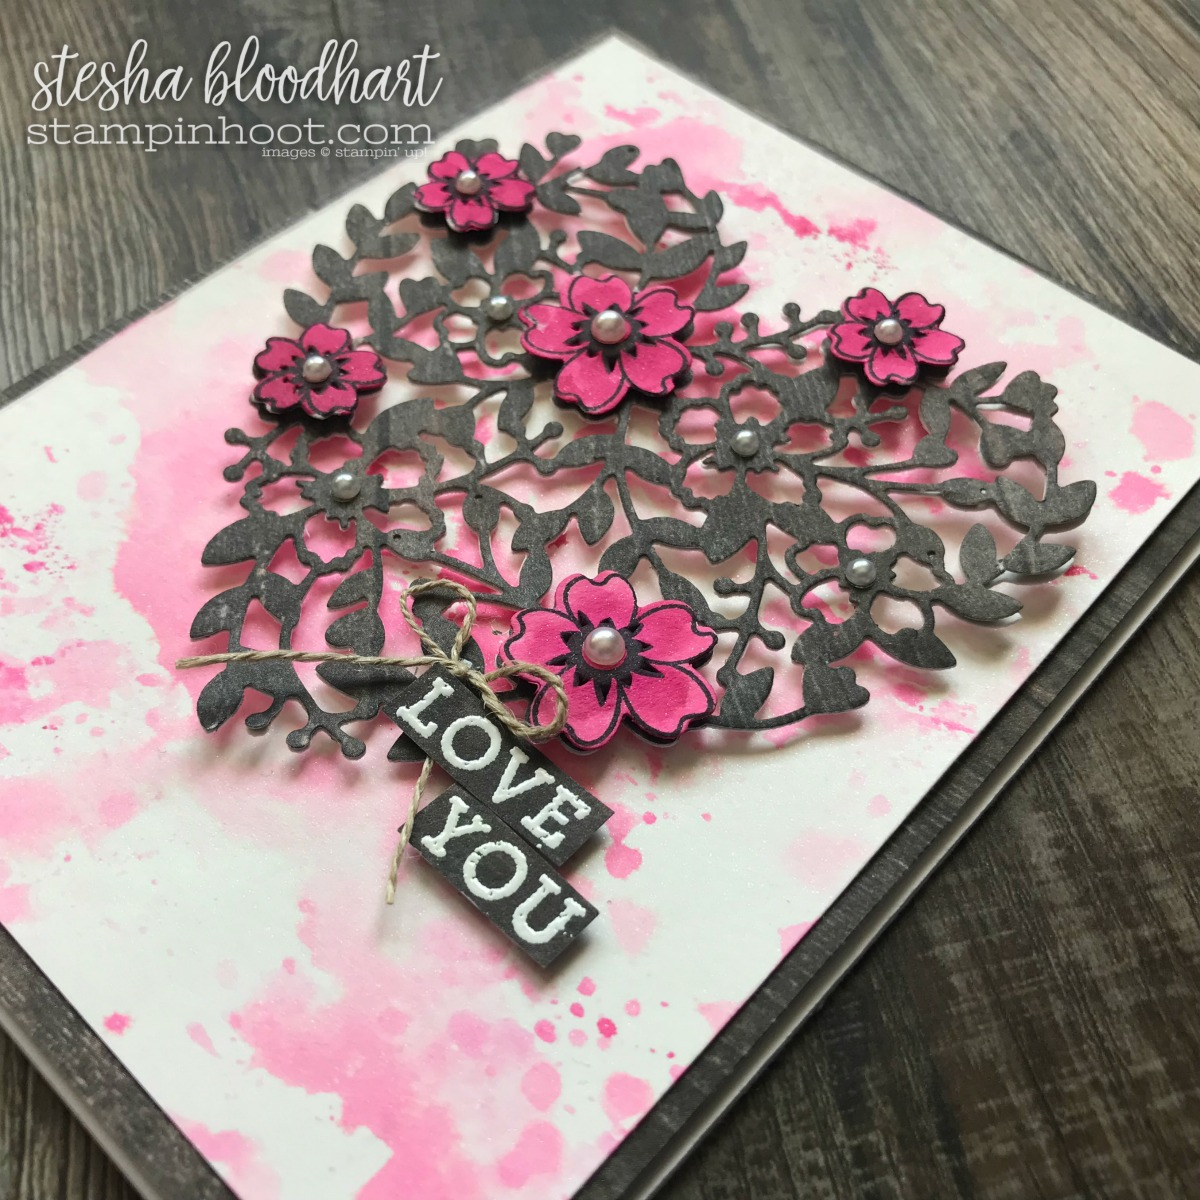 Bloomin' Hearts Thinlits Dies and Bloomin' Love Stamp Set by Stampin' Up! for the #tgifc146 Sketch Challenge. Card Created by Stesha Bloodhart, Stampin' Hoot! #stampinhoot #steshabloodhart